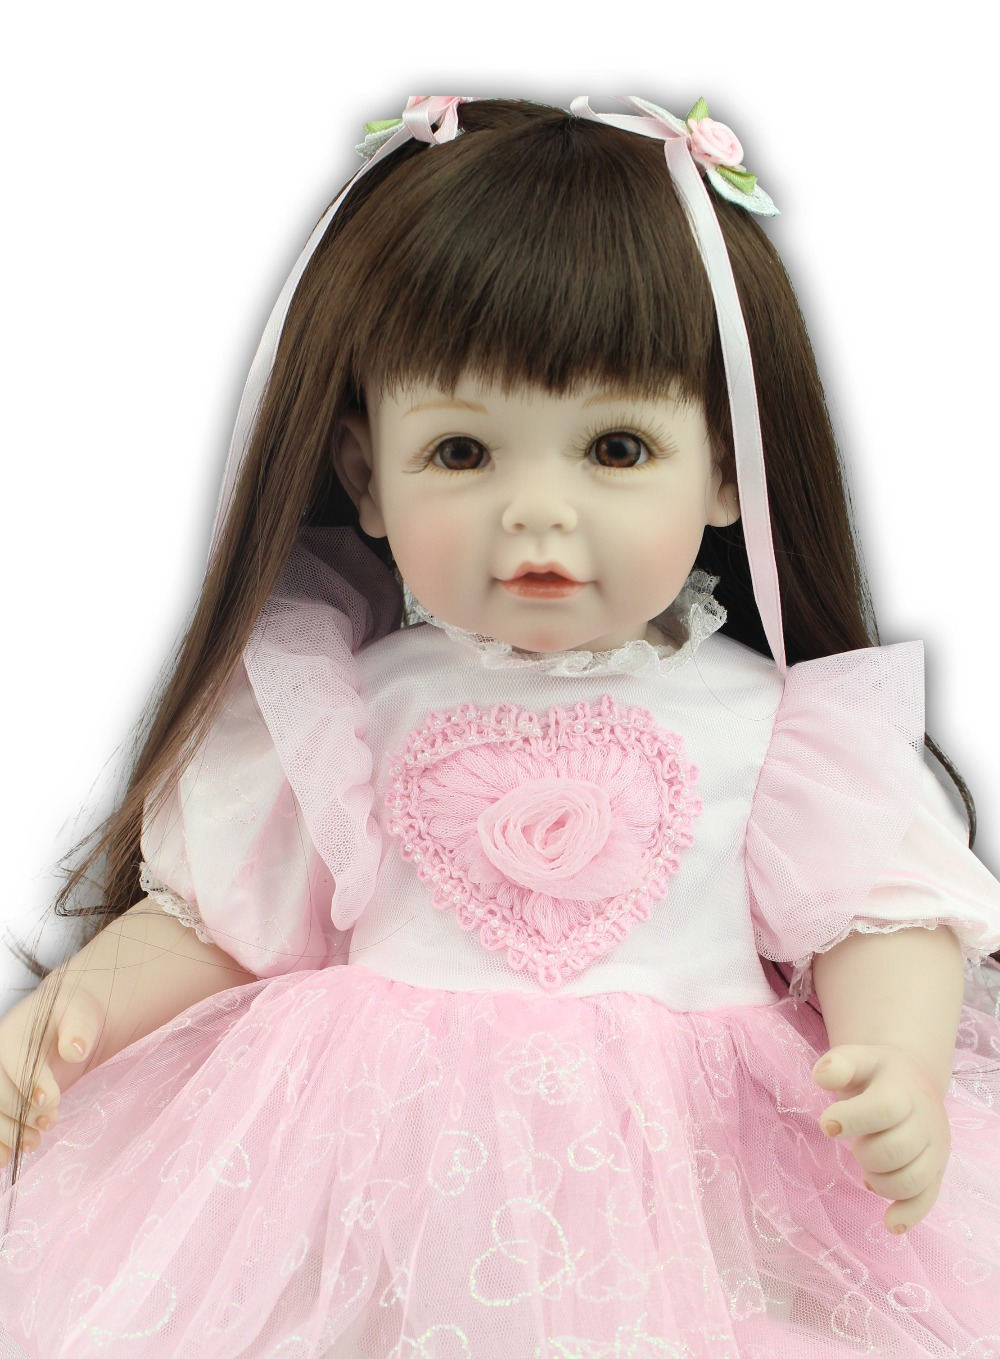 Wedding gifts realistic reborn todder doll girl doll with Soft PP Cotton Body educational tools